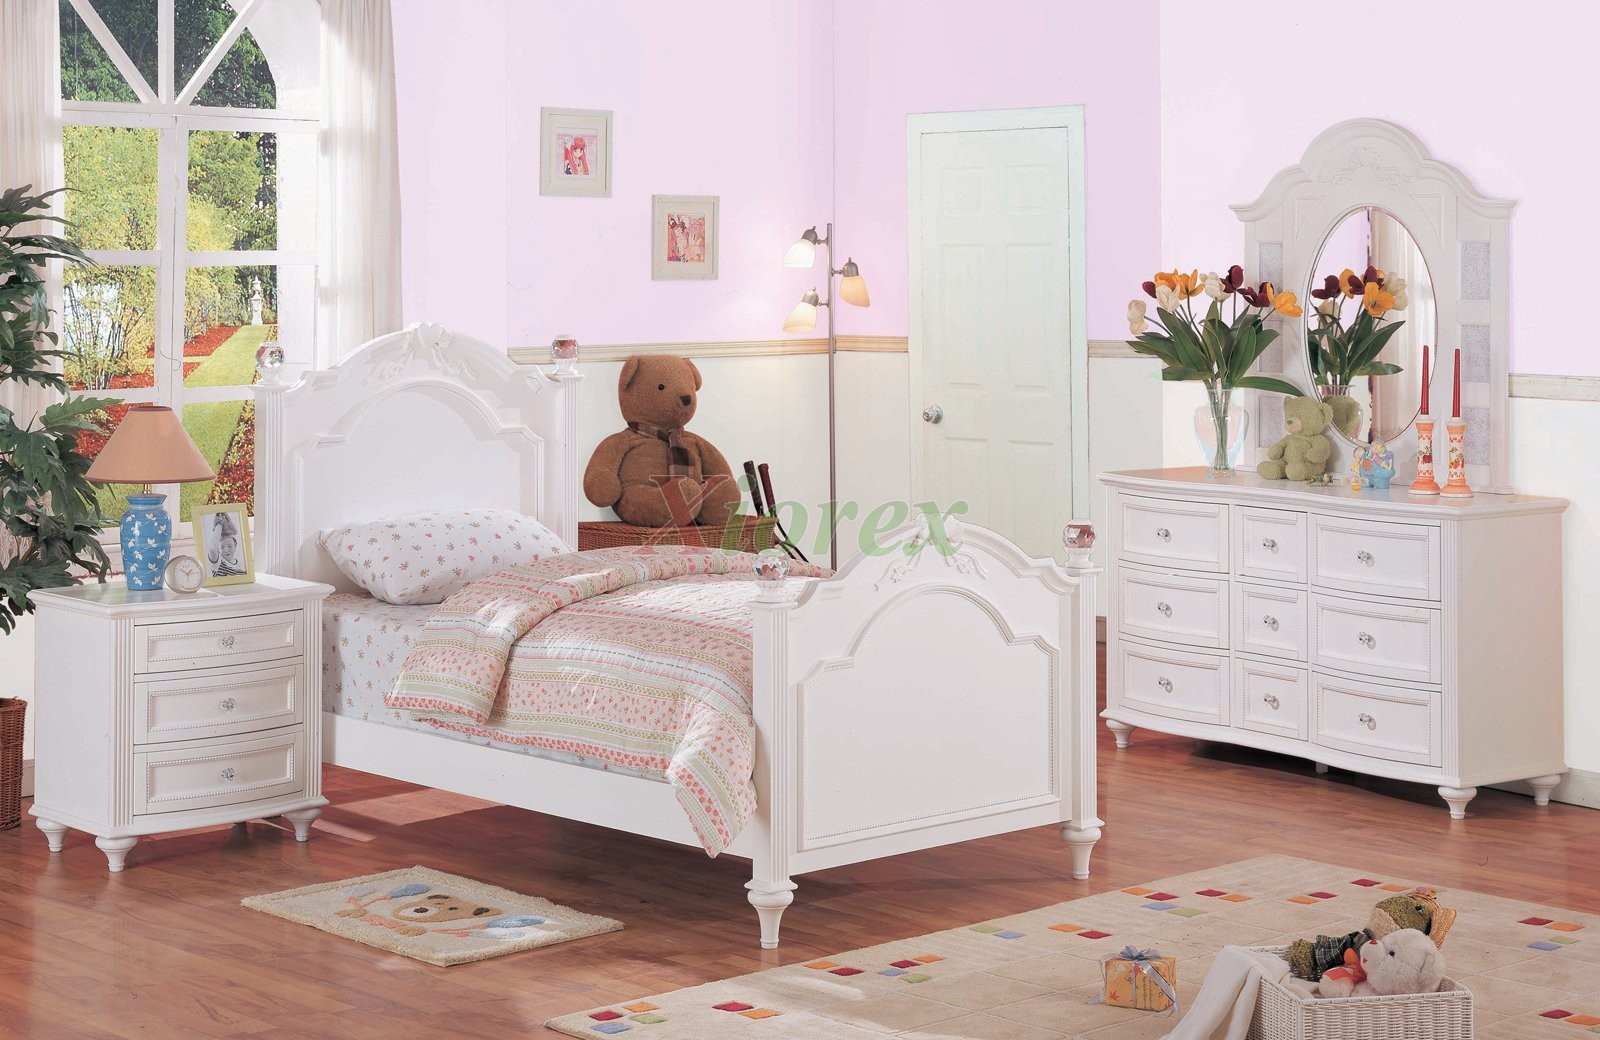 White kids poster bedroom furniture set 175 xiorex - White bedroom furniture for girl ...